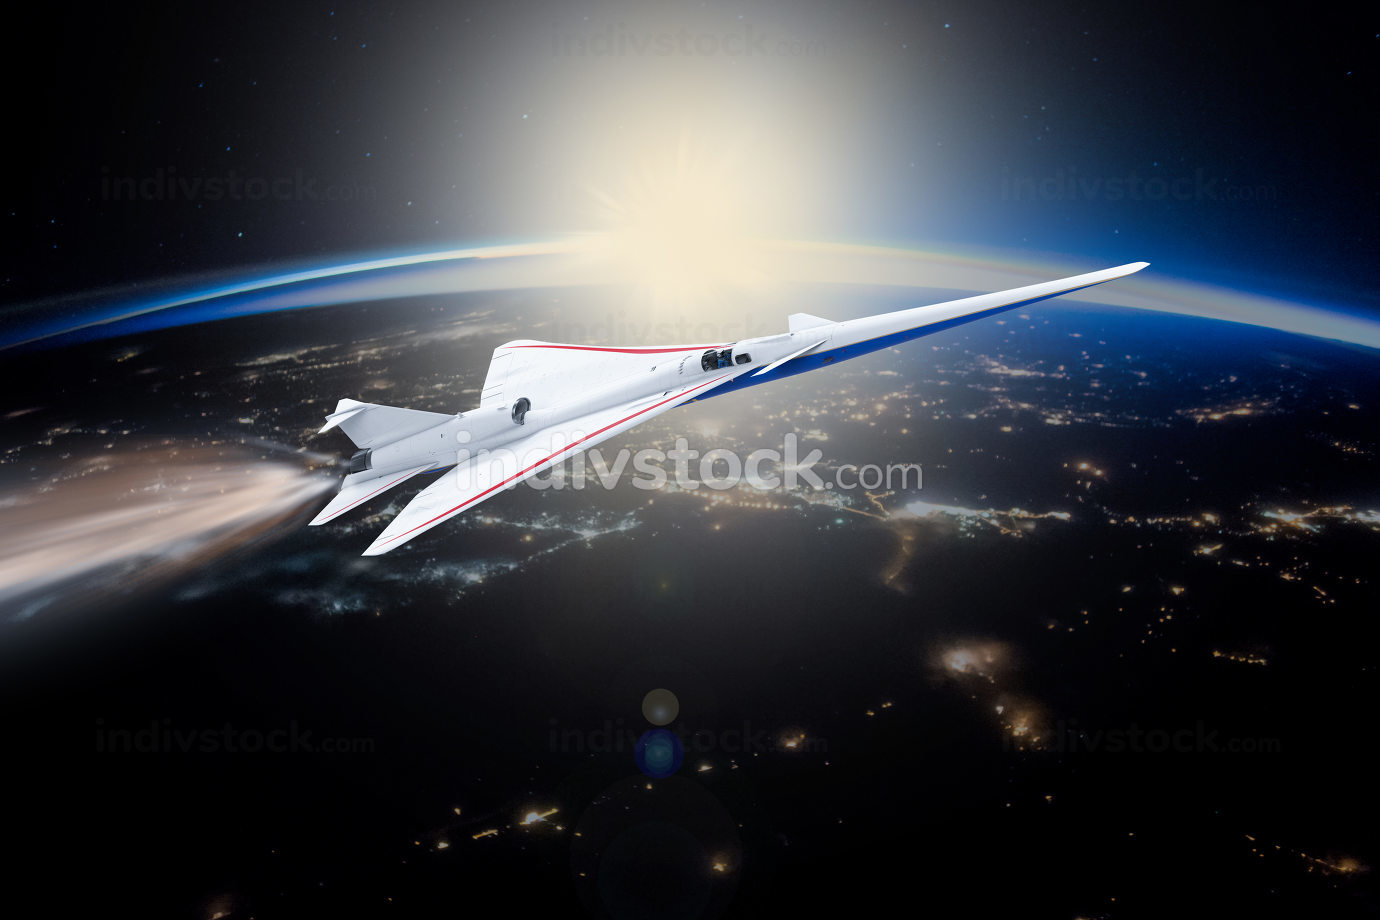 Spaceship launching from planet Earth into other planets. Elements of this image furnished by NASA